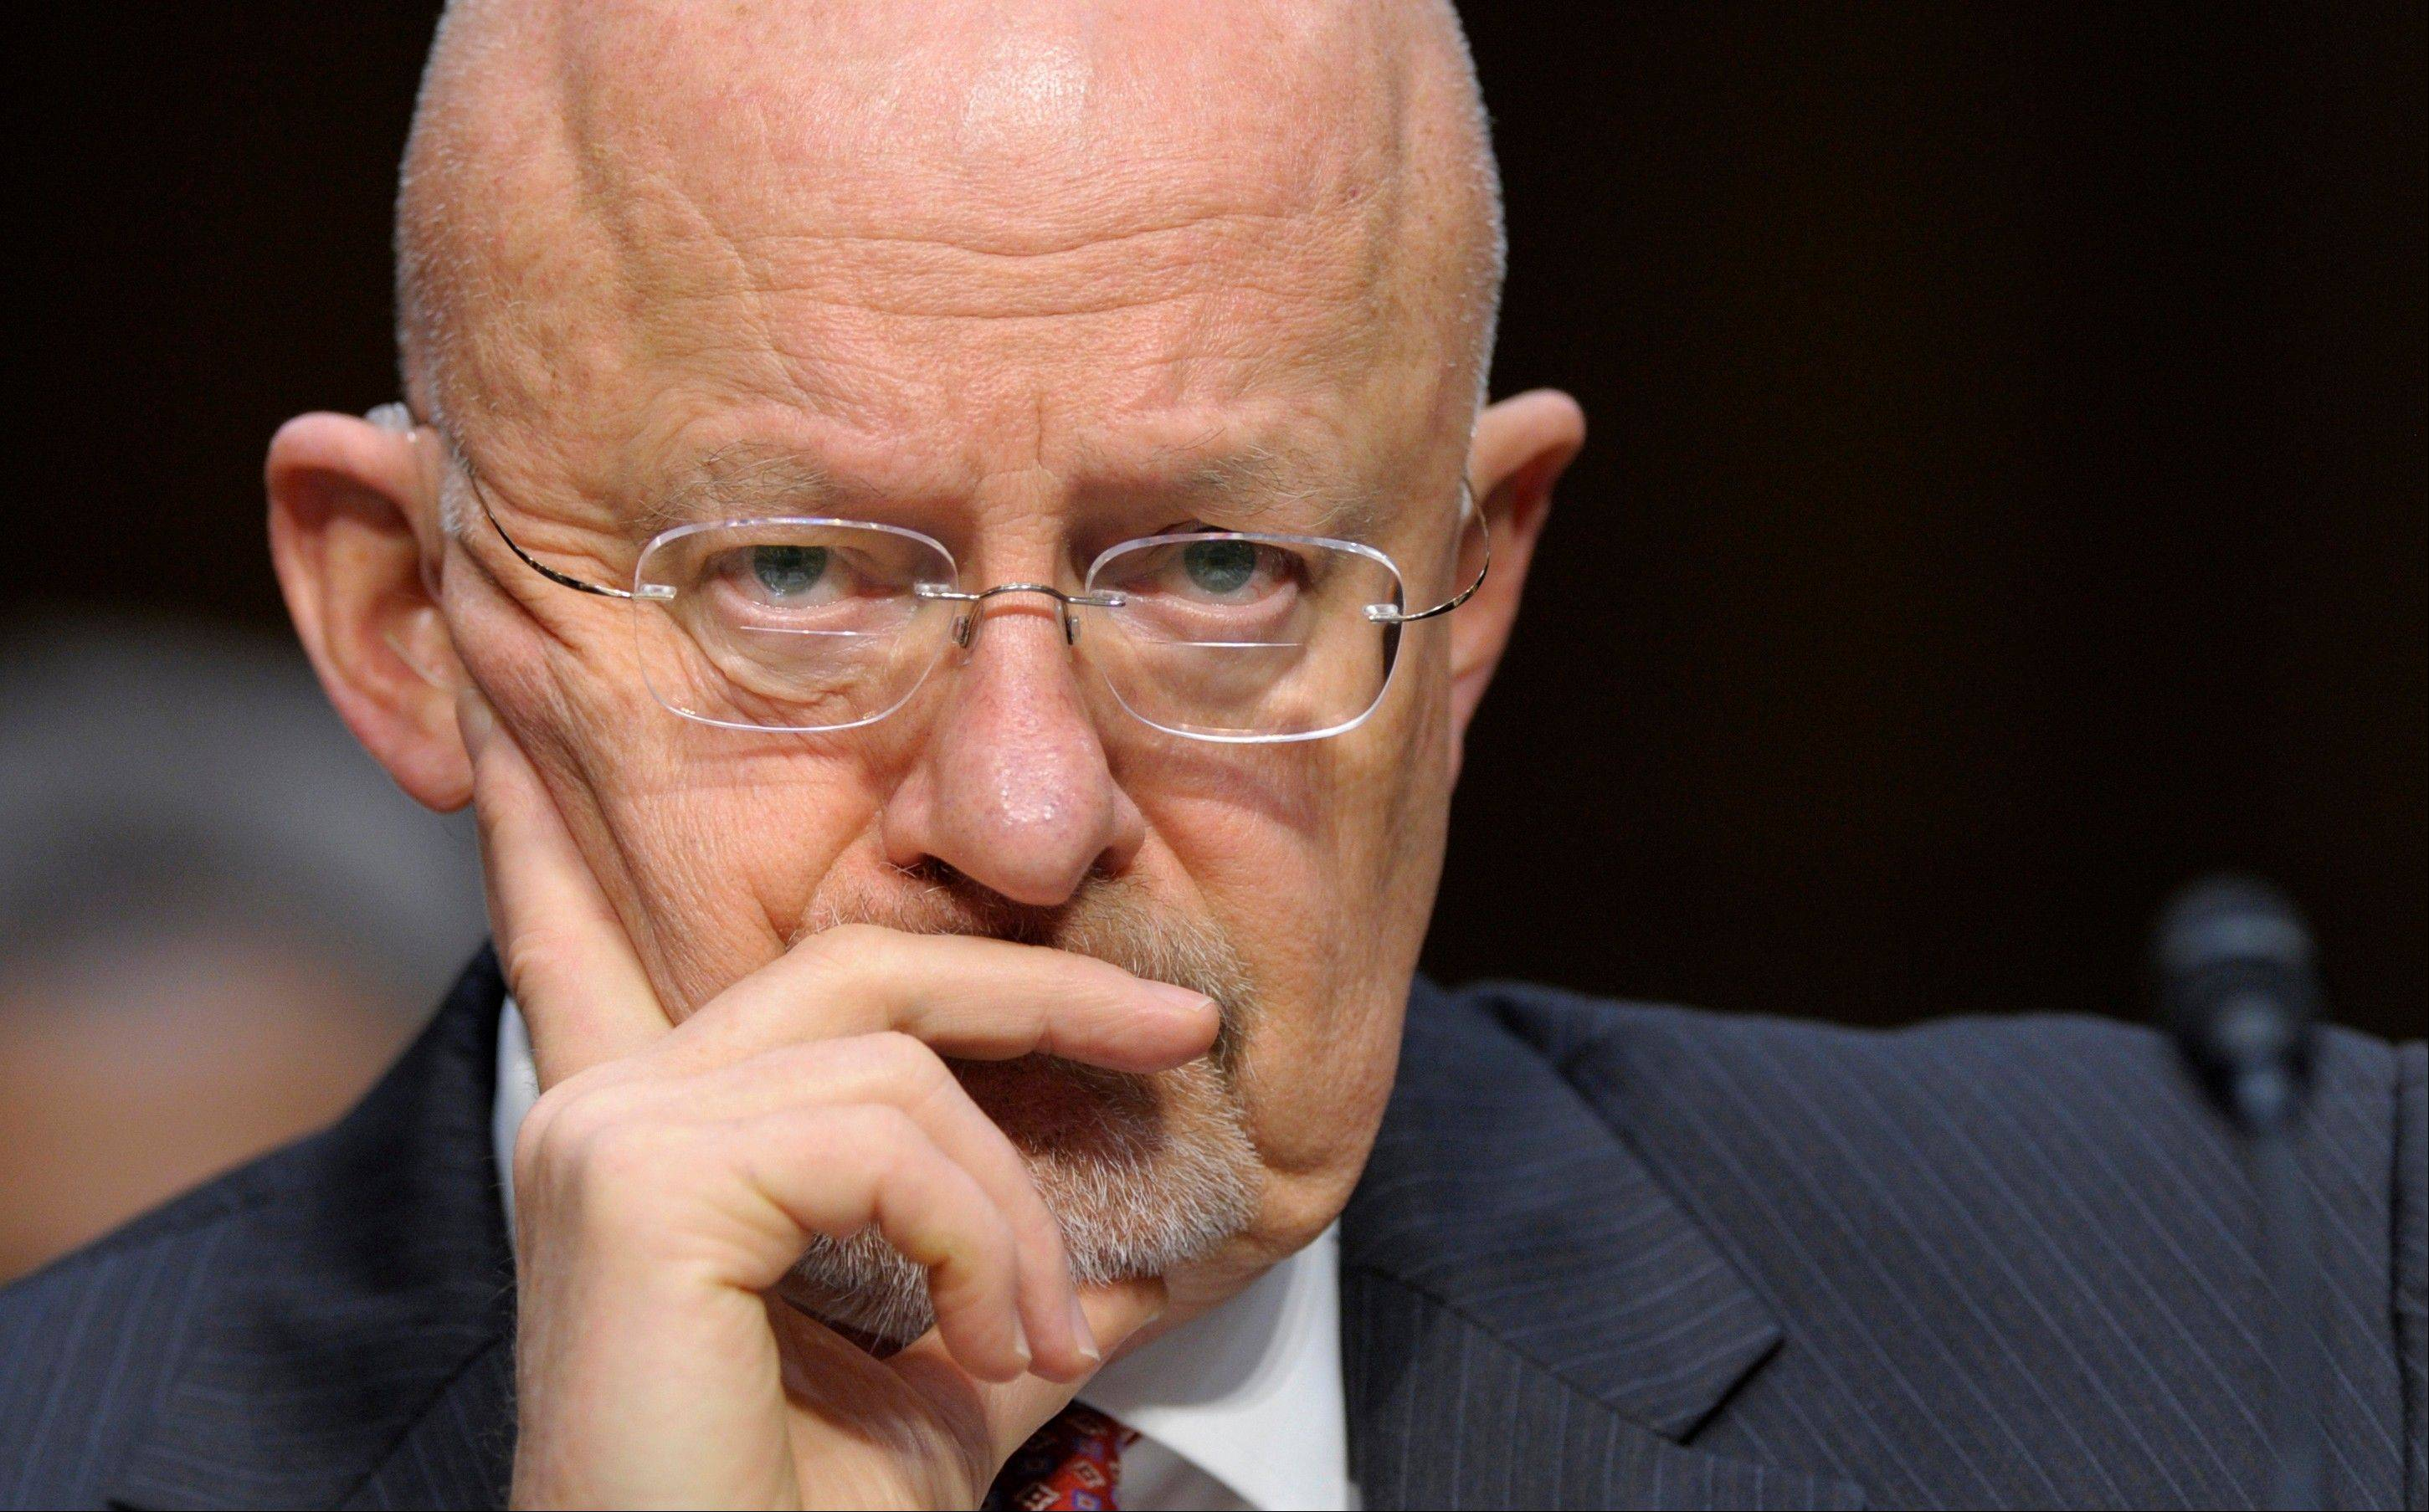 Director of National Intelligence James Clapper delivered the U.S. intelligence community's overview of global threats posed by terrorism, cyber attacks, weapons of mass destruction, the months-long civil war in Syria and the unsettled situation in post-Arab Spring nations.